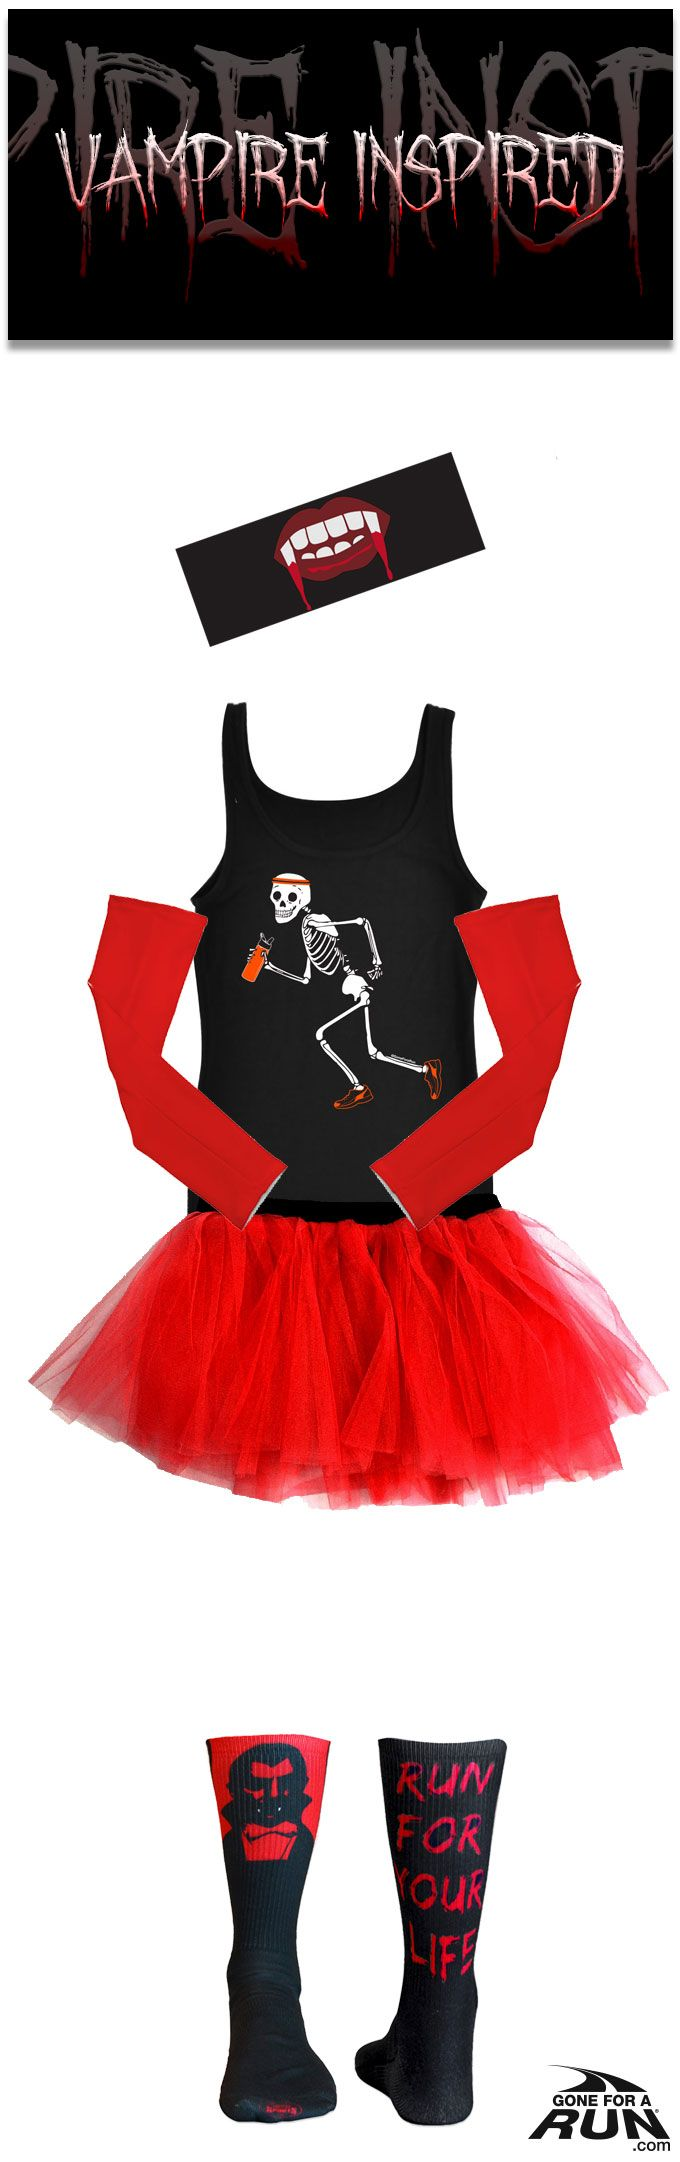 Make up your own #costume, or check out one of our original ideas: Have the competition run the opposite direction with our Women's #vampire inspired Halloween runner's costume! Get in a #spooky fun mood with our #Halloween inspired running apparel! From shirts to socks and more, you'll find something to suit you and your running friends haunted moods!